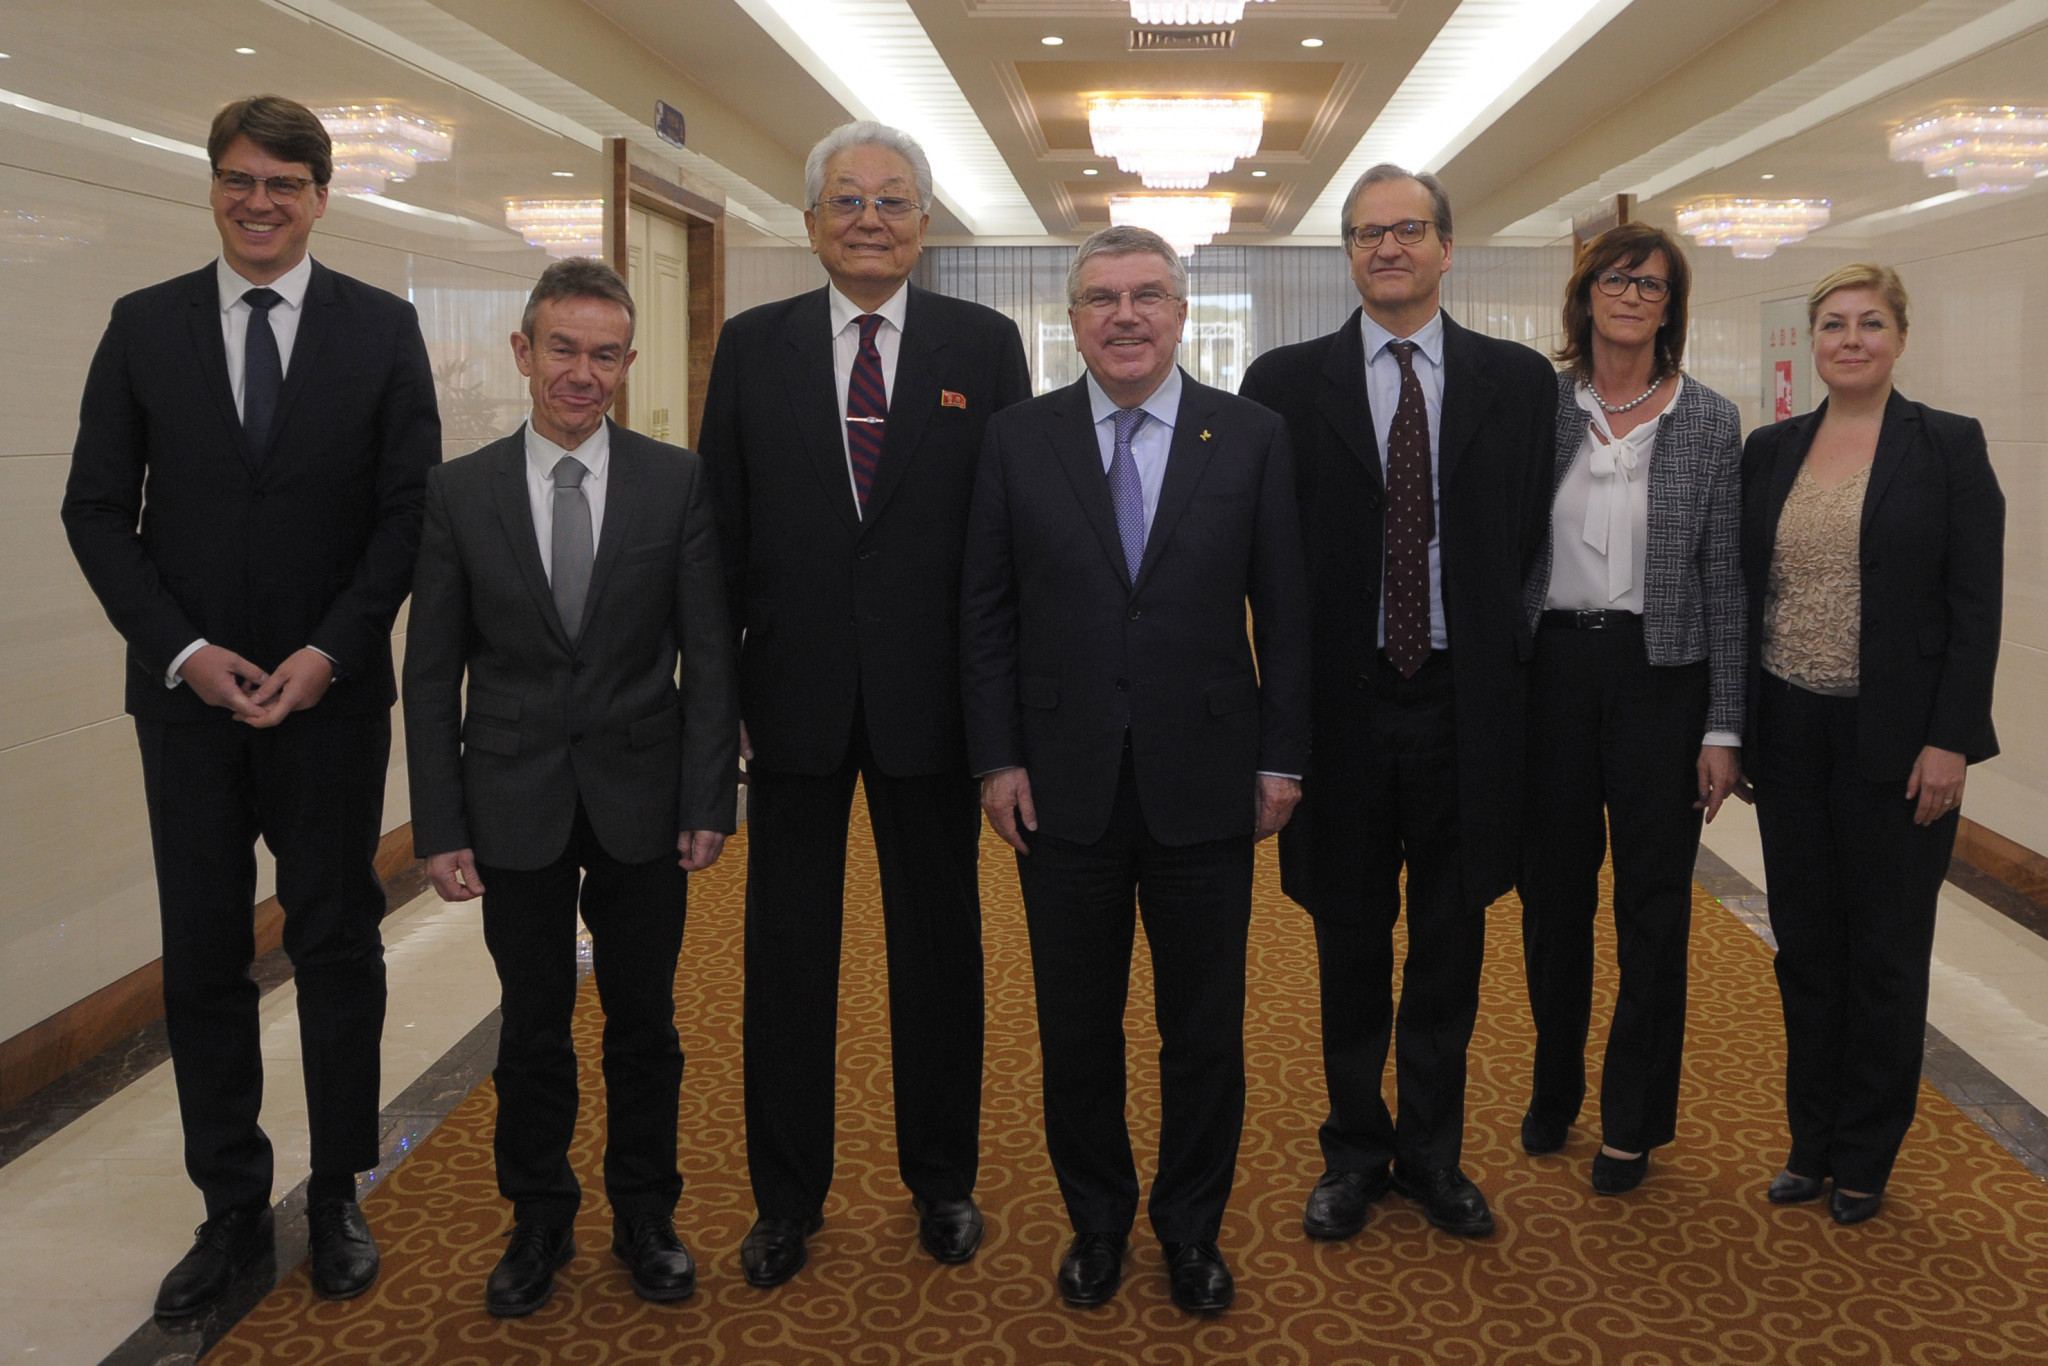 Thomas Bach and the IOC delegation in North Korea ©Getty Images